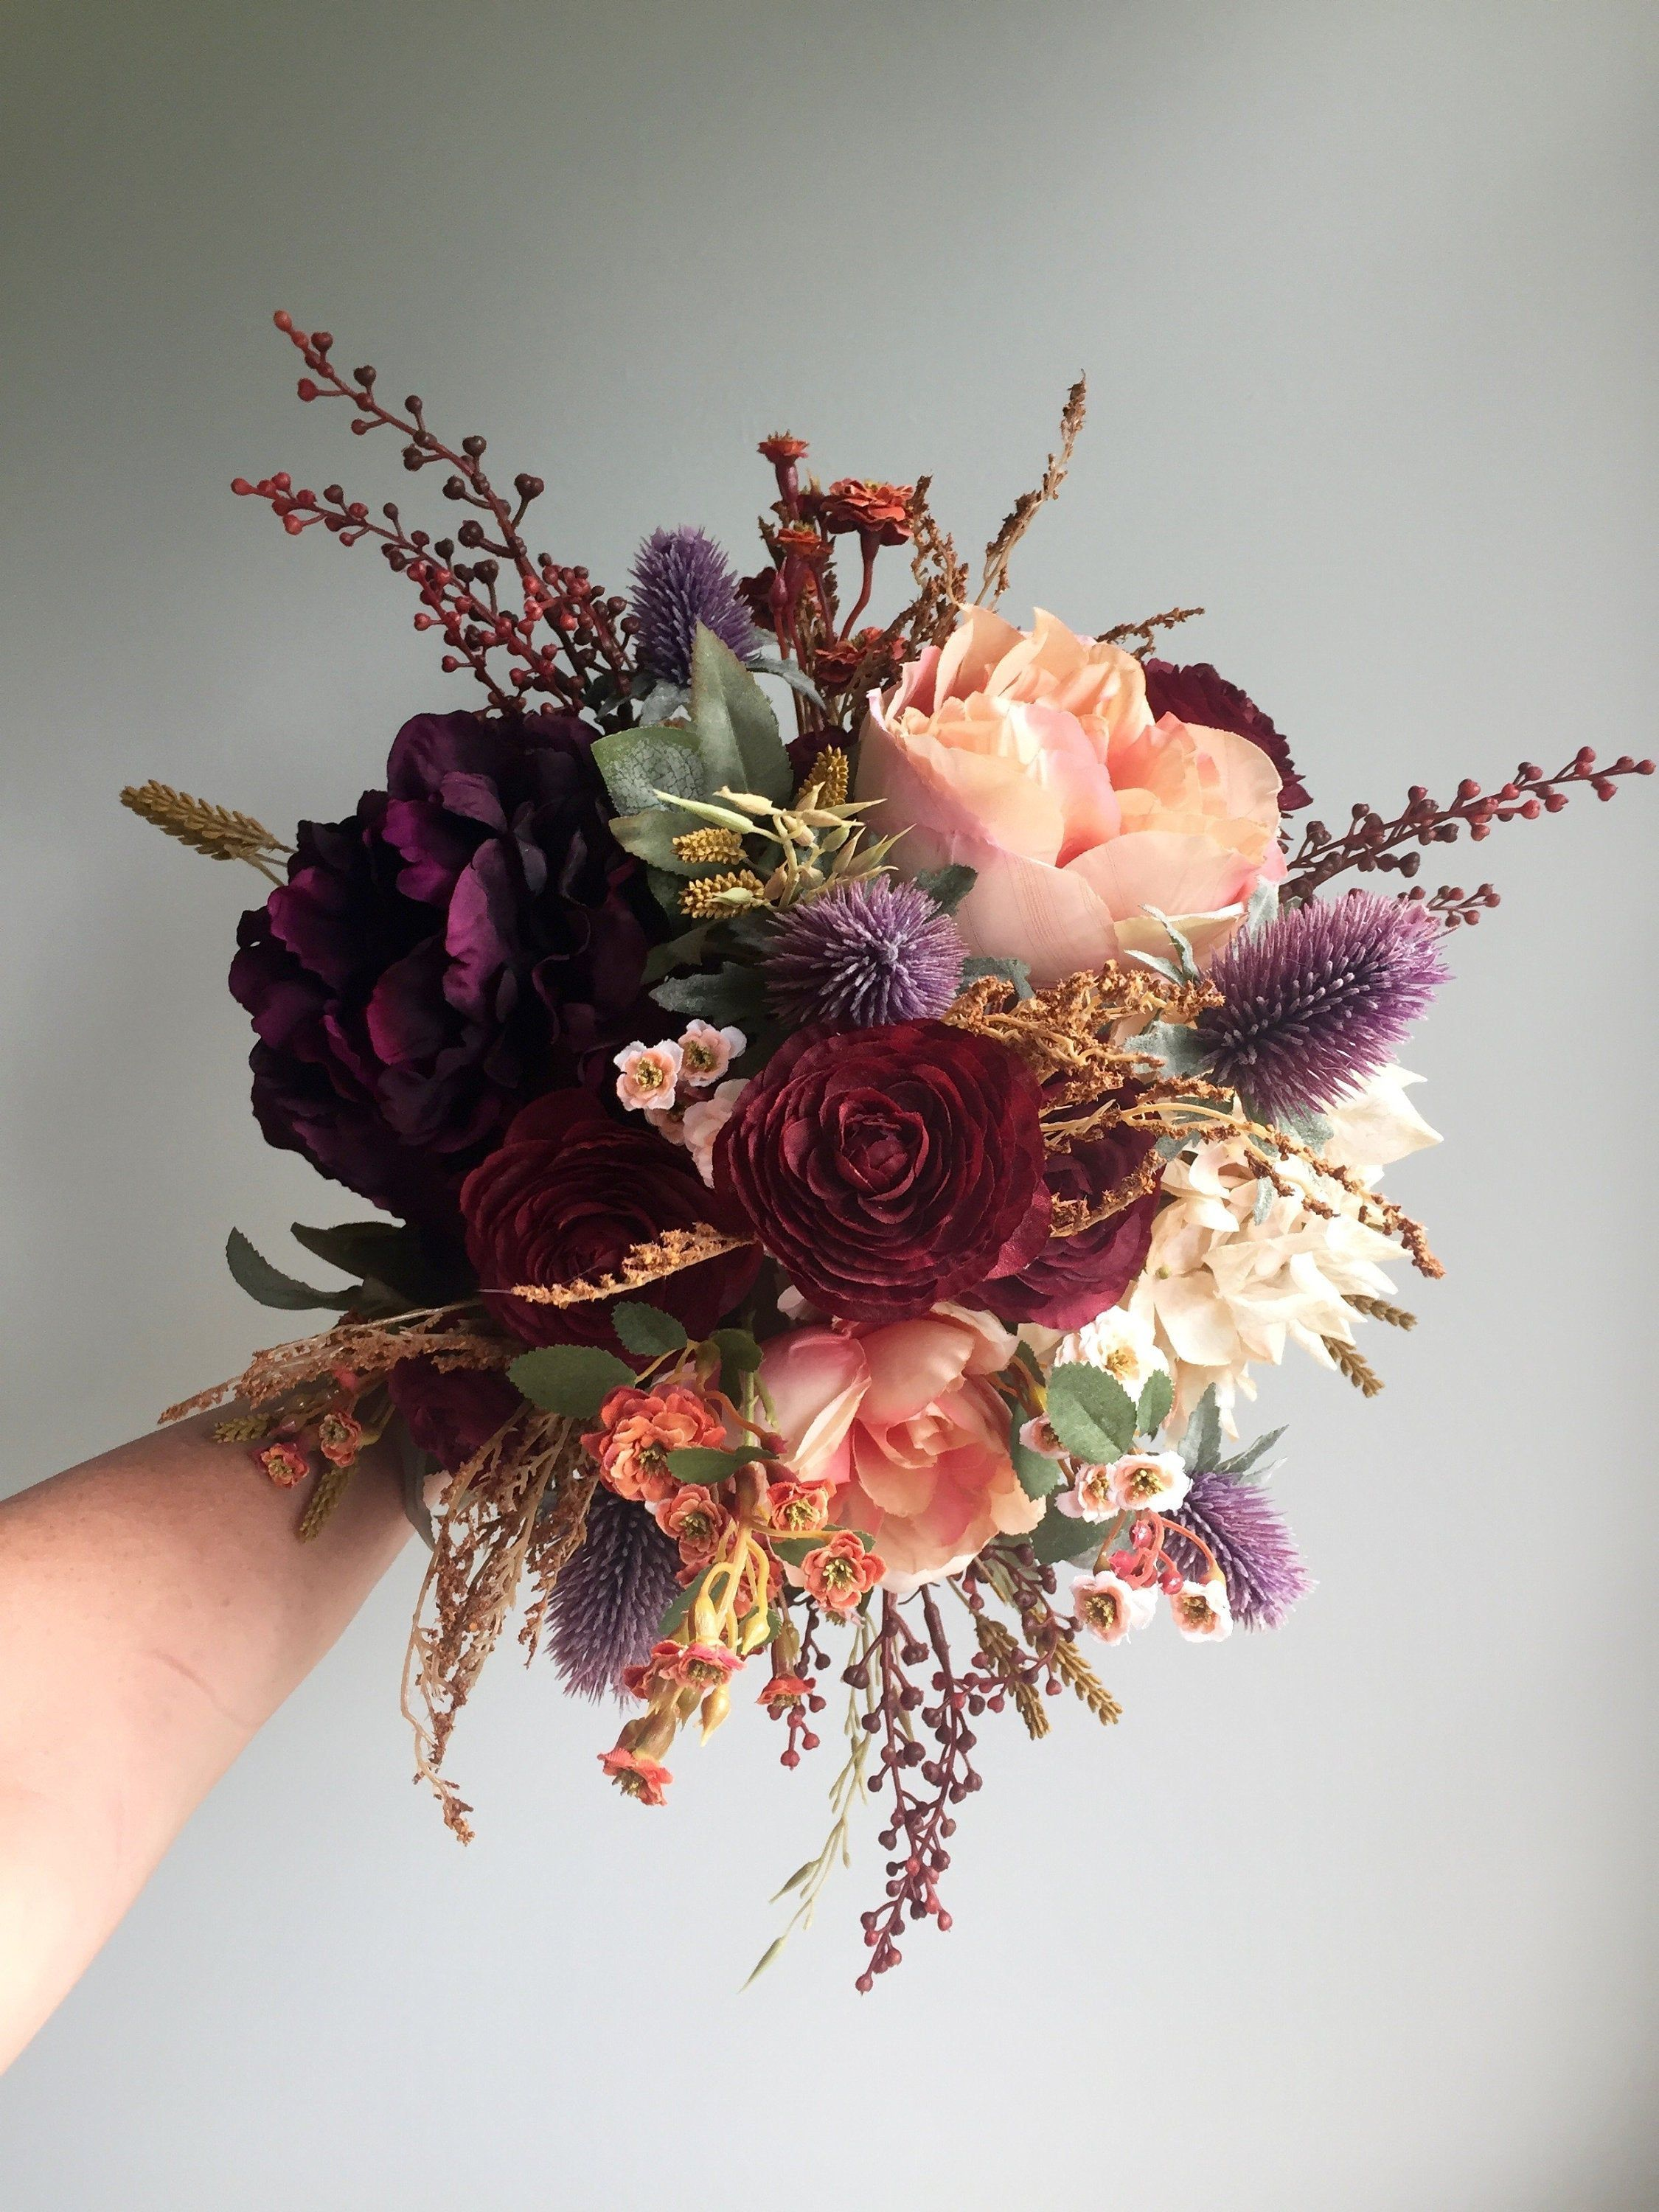 Fall Wedding Bouquet, Silk Wedding Bouquet, Rustic Bridal Bouquet, Burgundy Bouquet, Autumn Flower Bouquet, Artificial Flowers, Hydrangea #fallbridalbouquets